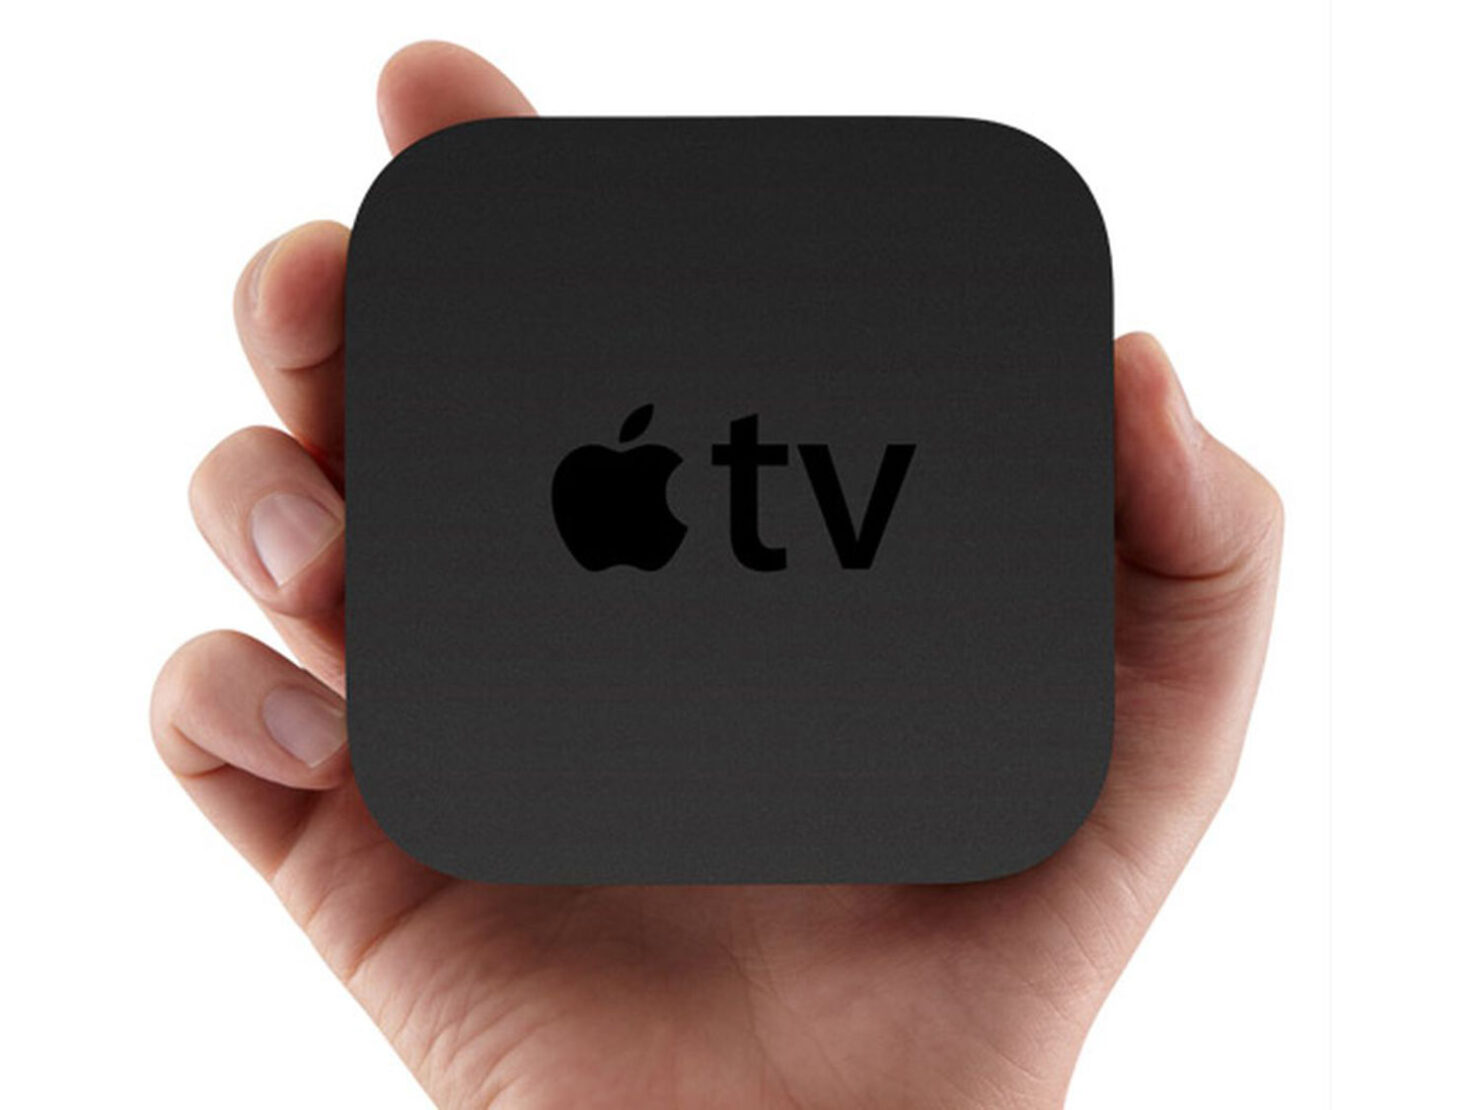 Apple TV With iPad Pro-Like Hardware Reportedly Arriving in 2021